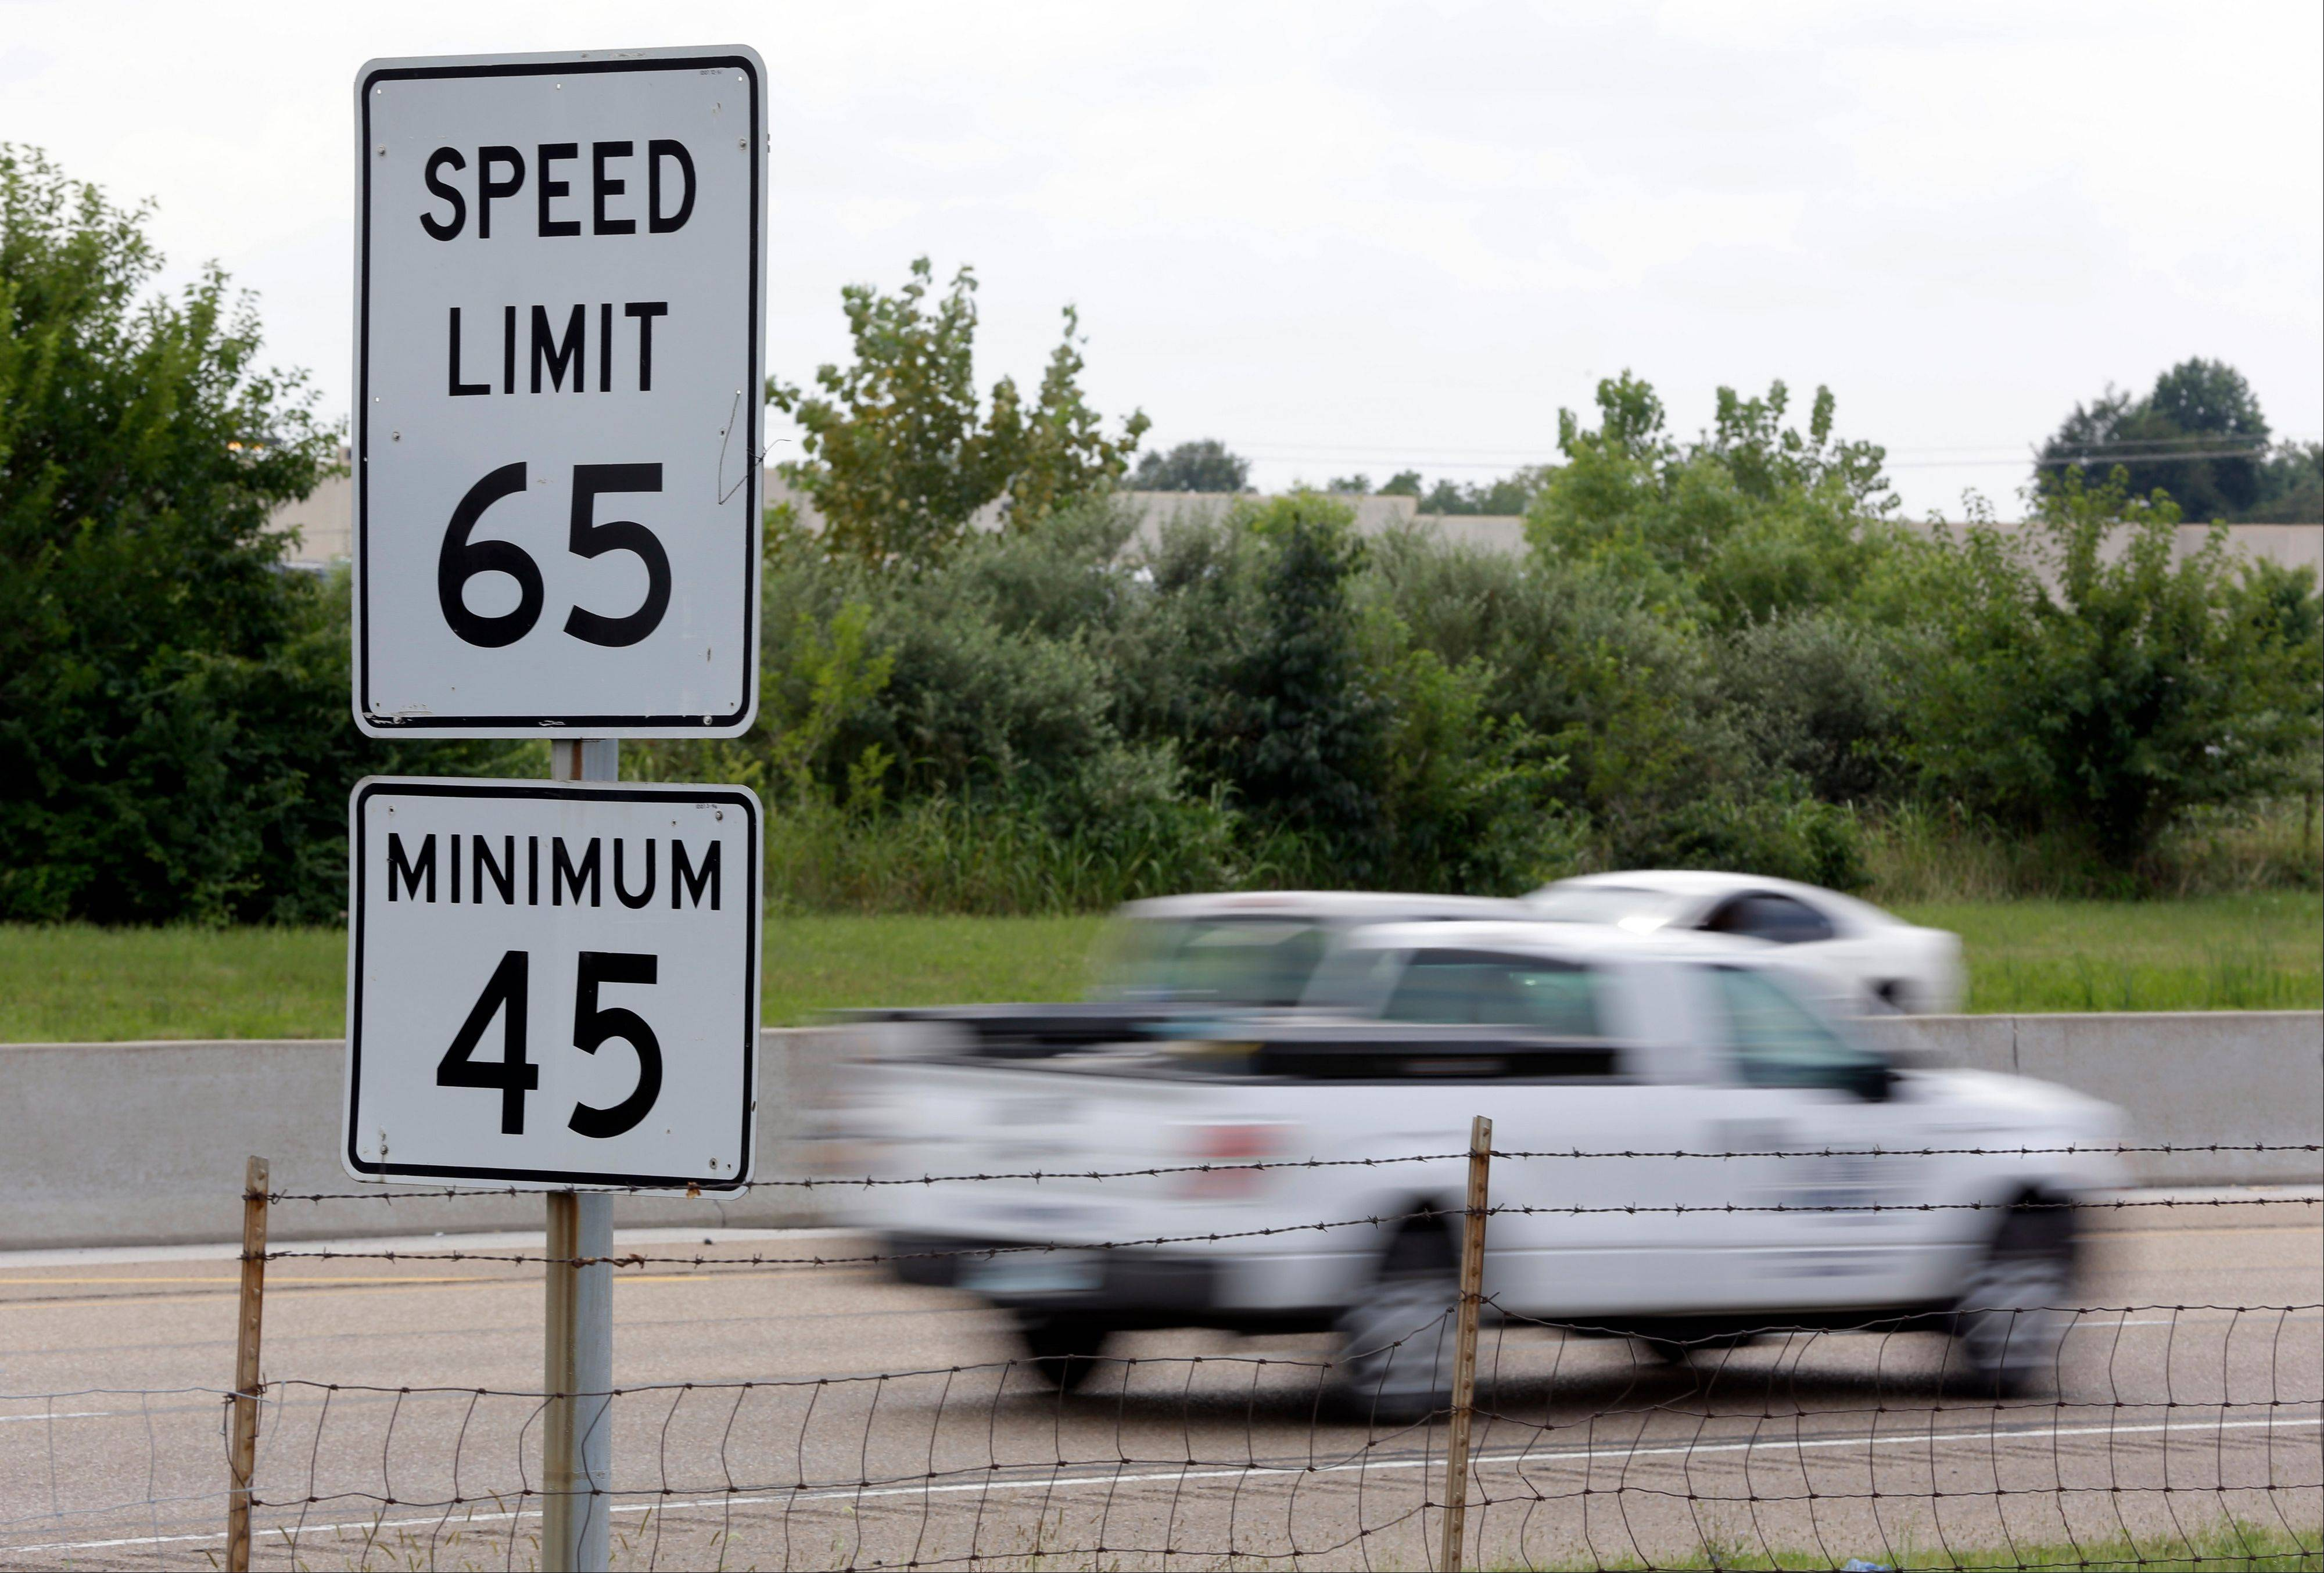 ASSOCIATED PRESS Vehicles pass a speed limit sign along Interstate 64 in O'Fallon, Ill. Gov. Pat Quinn has until Monday to sign or veto legislation that would raise the speed limit on rural interstates in Illinois from 65 mph to 70 mph starting in January.